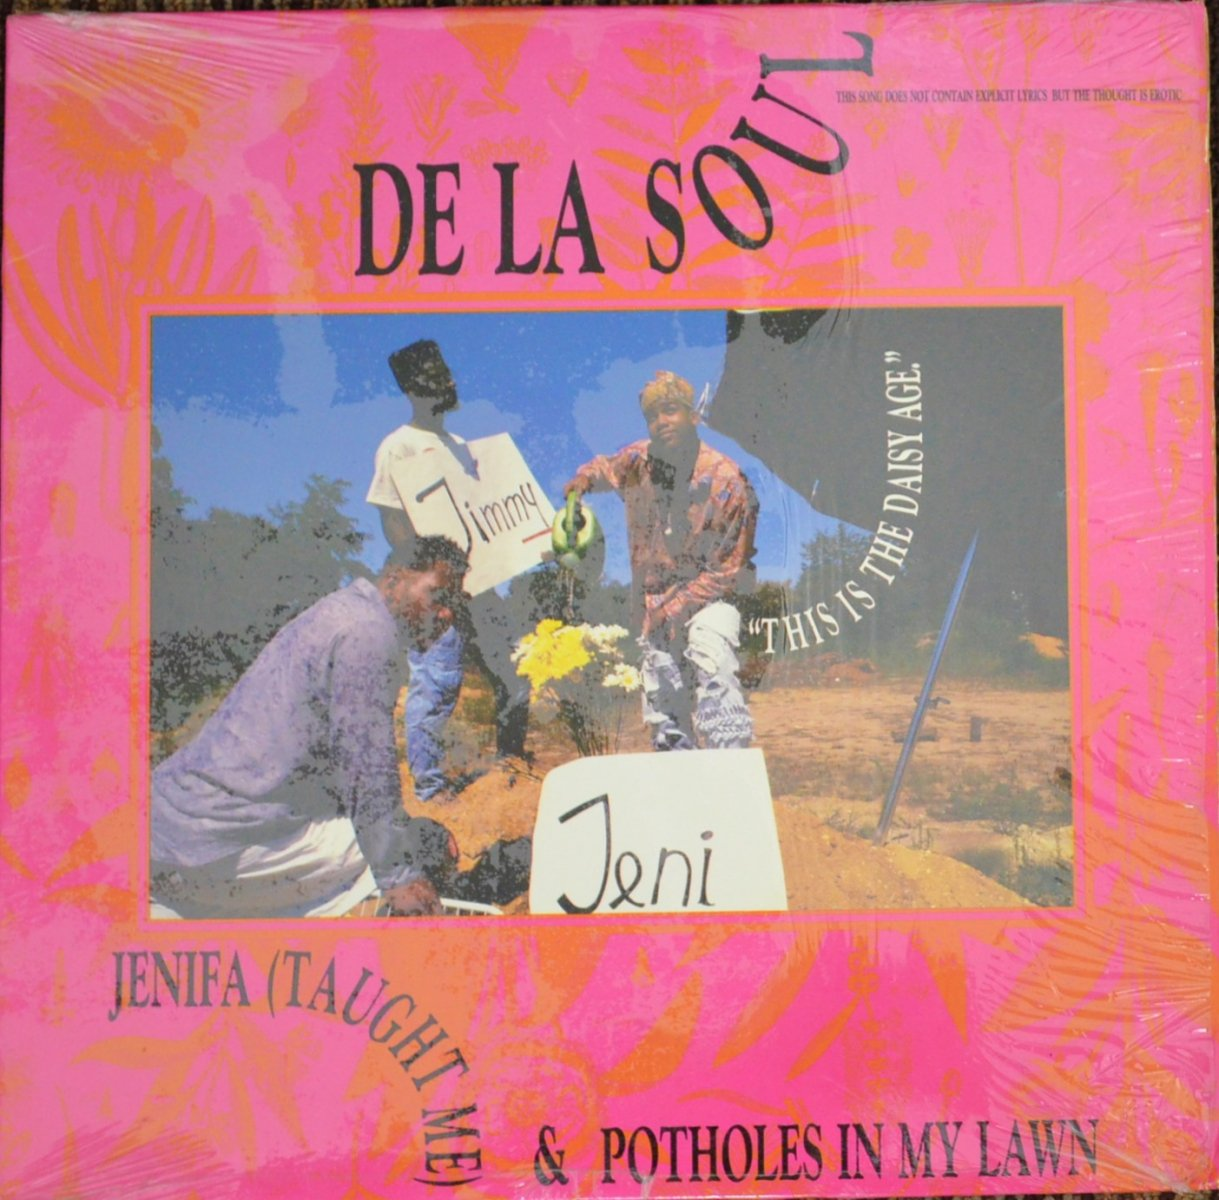 DE LA SOUL ‎/ JENIFA (TAUGHT ME) / POTHOLES IN MY LAWN (12